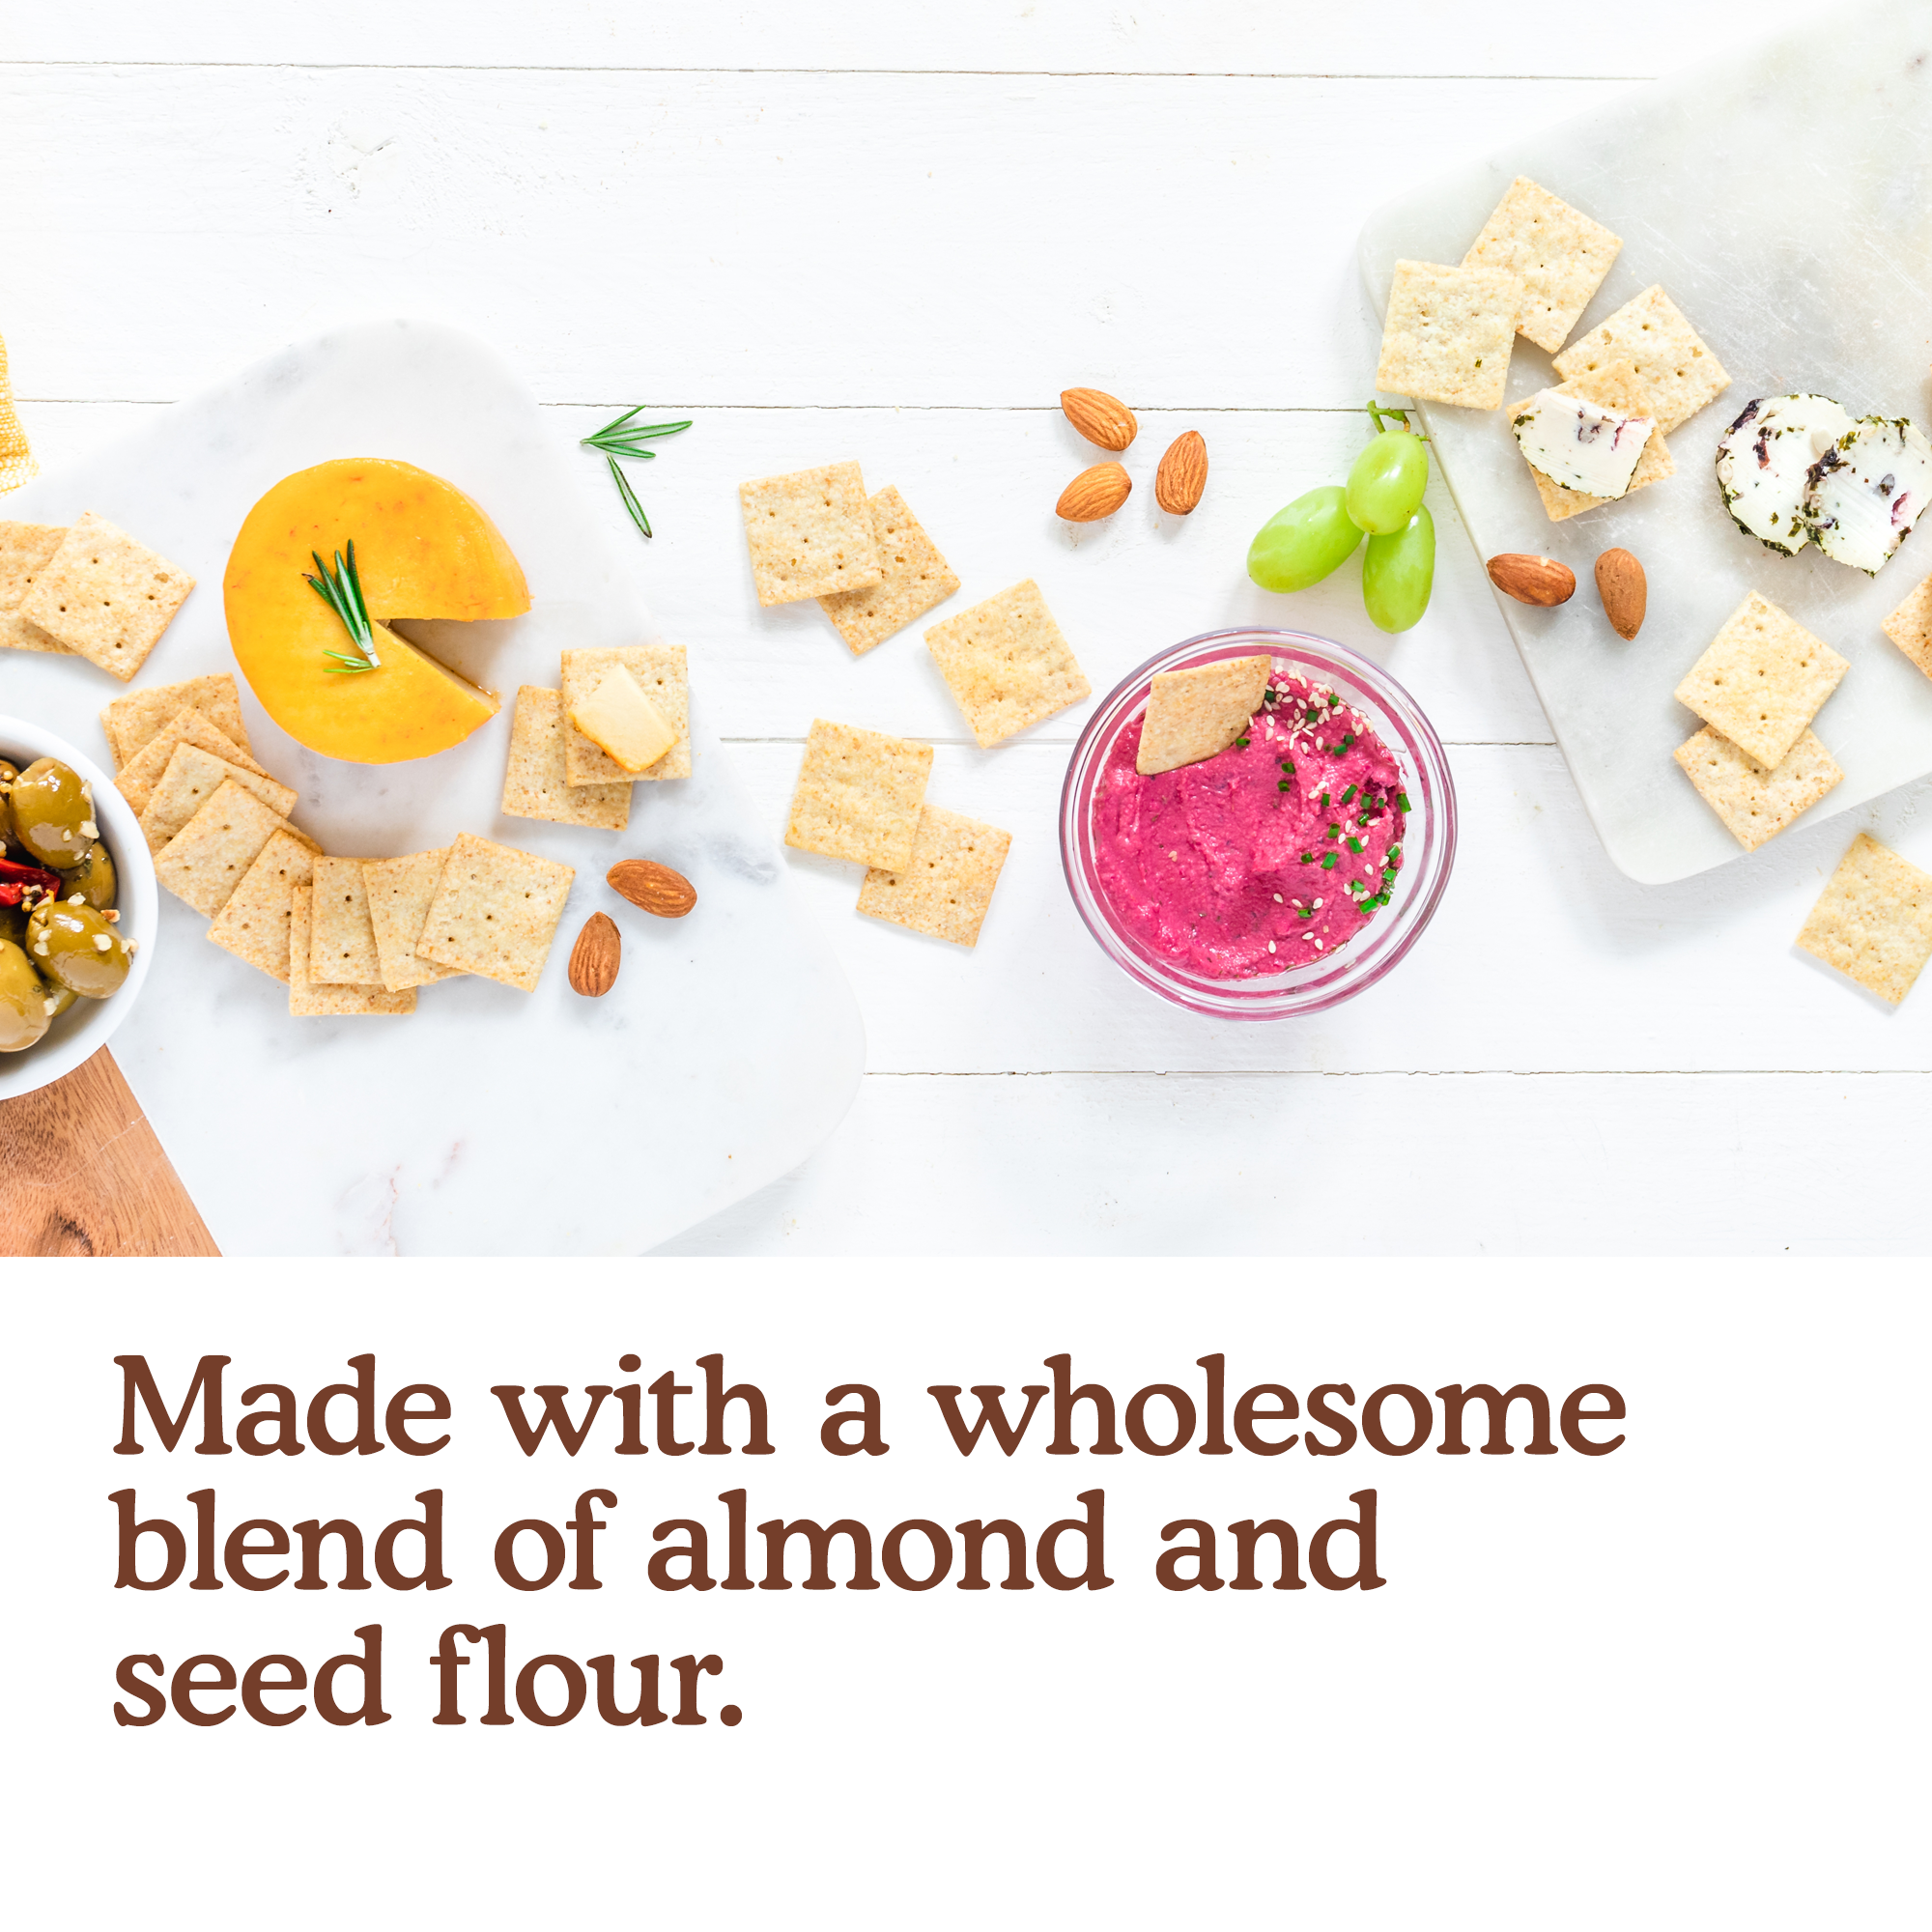 Made with a wholesome blend of almond and seed flour